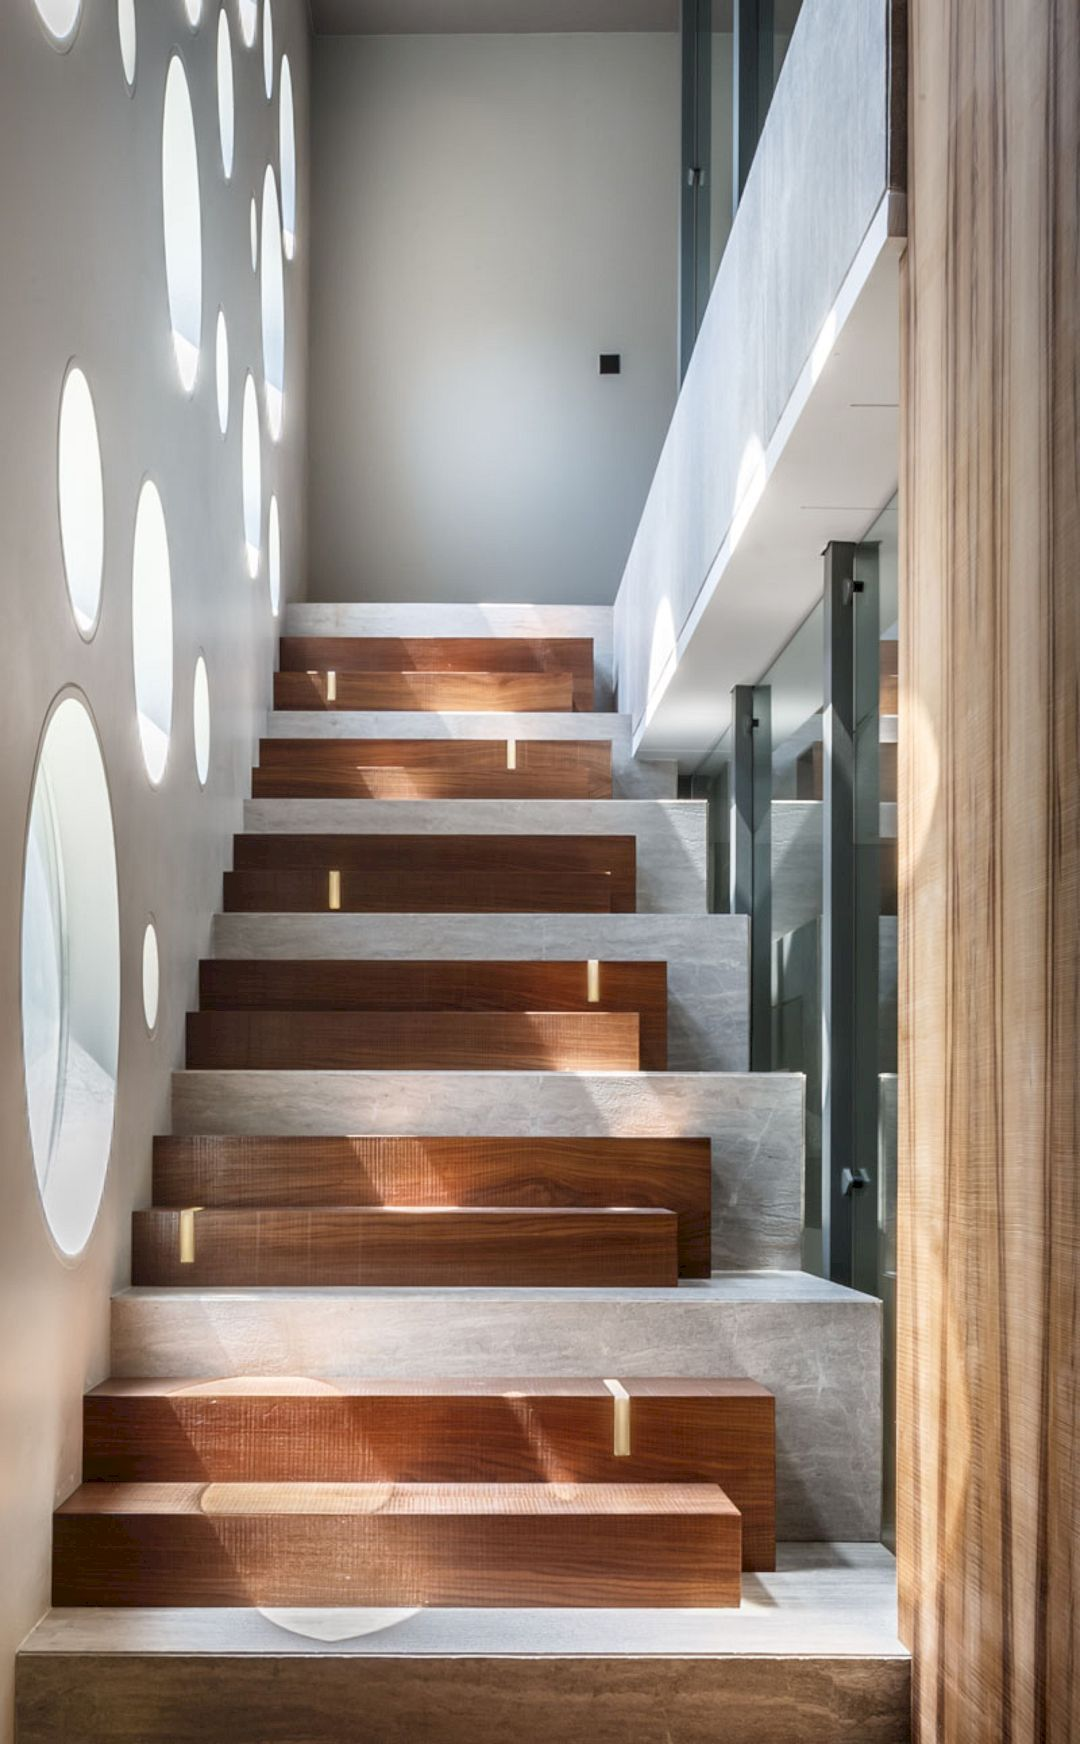 Impressive Staircase Design Inspirations | Staircases, Stairways and ...